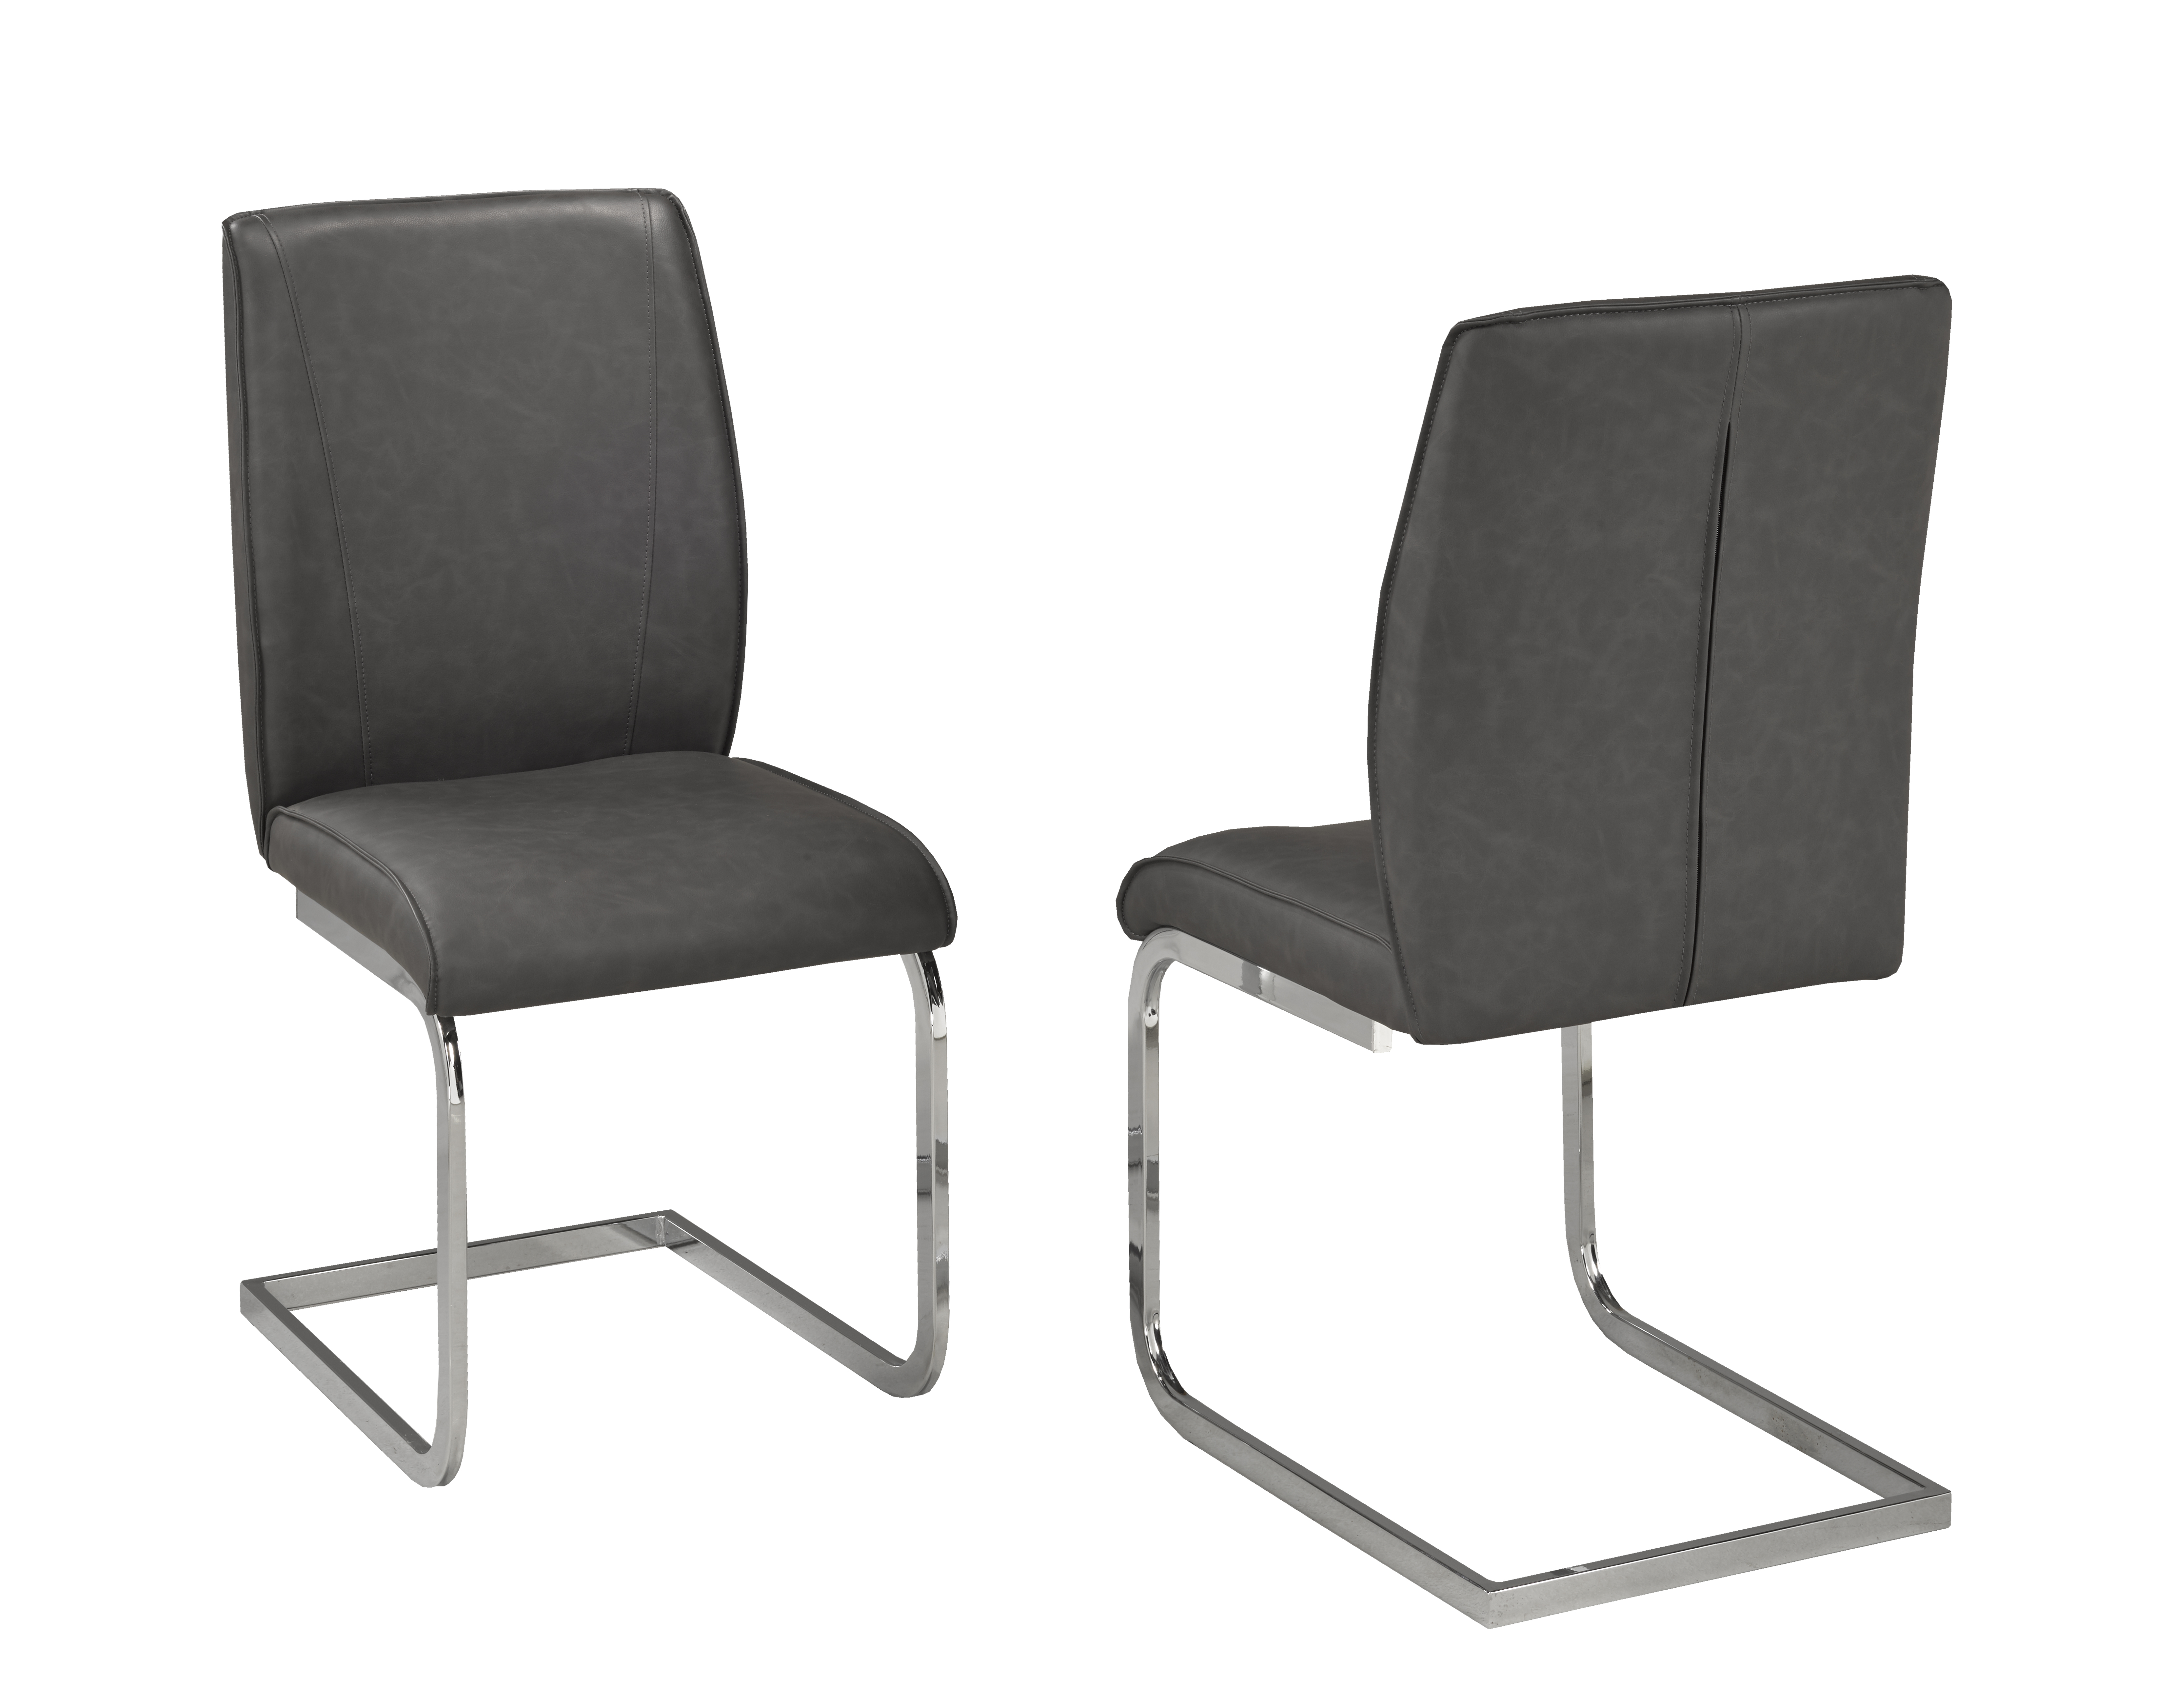 EZRA DINING CHAIR (DINING CHAIR SET OF 2 )